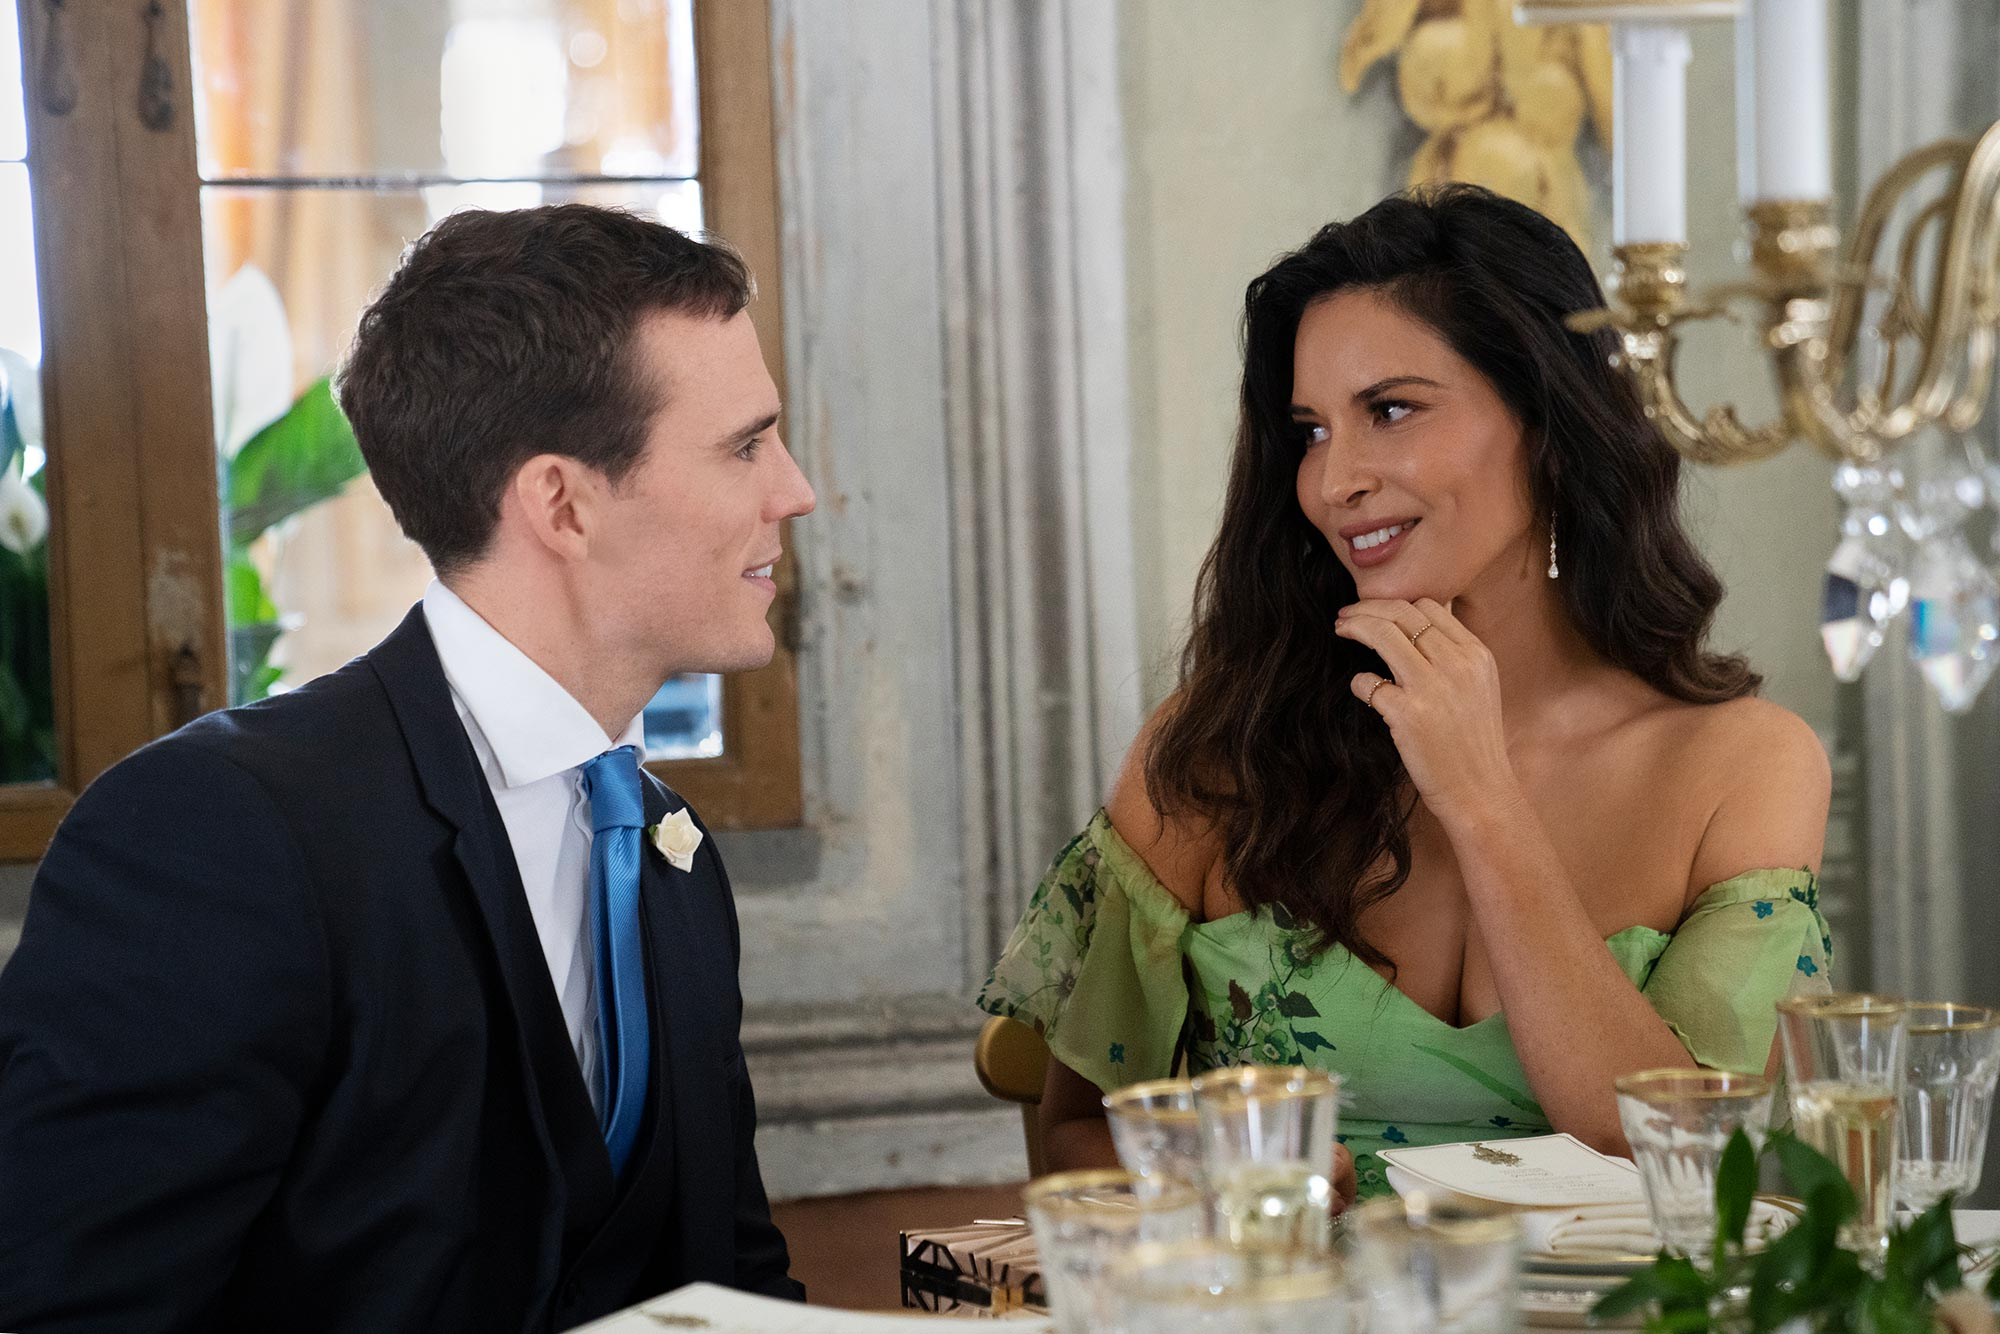 Love Wedding Repeat review: Clumsy Netflix rom-com stumbles to the ...